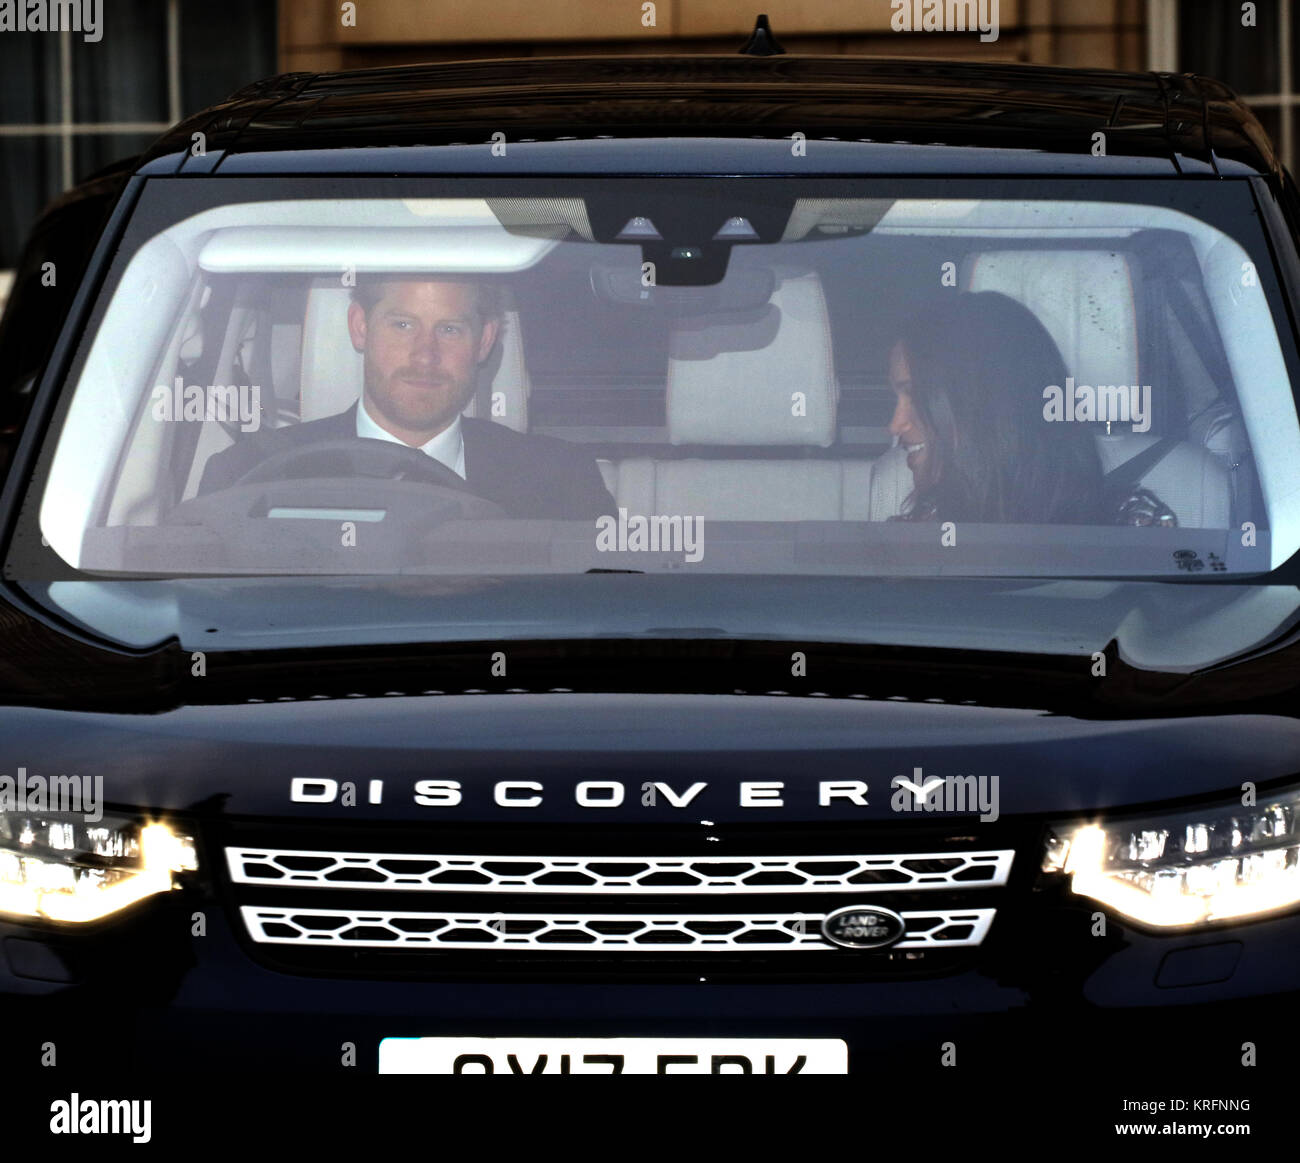 London, UK. 20th Dec, 2017. HRH Prince Harry (of Wales) and Meghan Markle, leave the HM Queen Elizabeth II annual Stock Photo